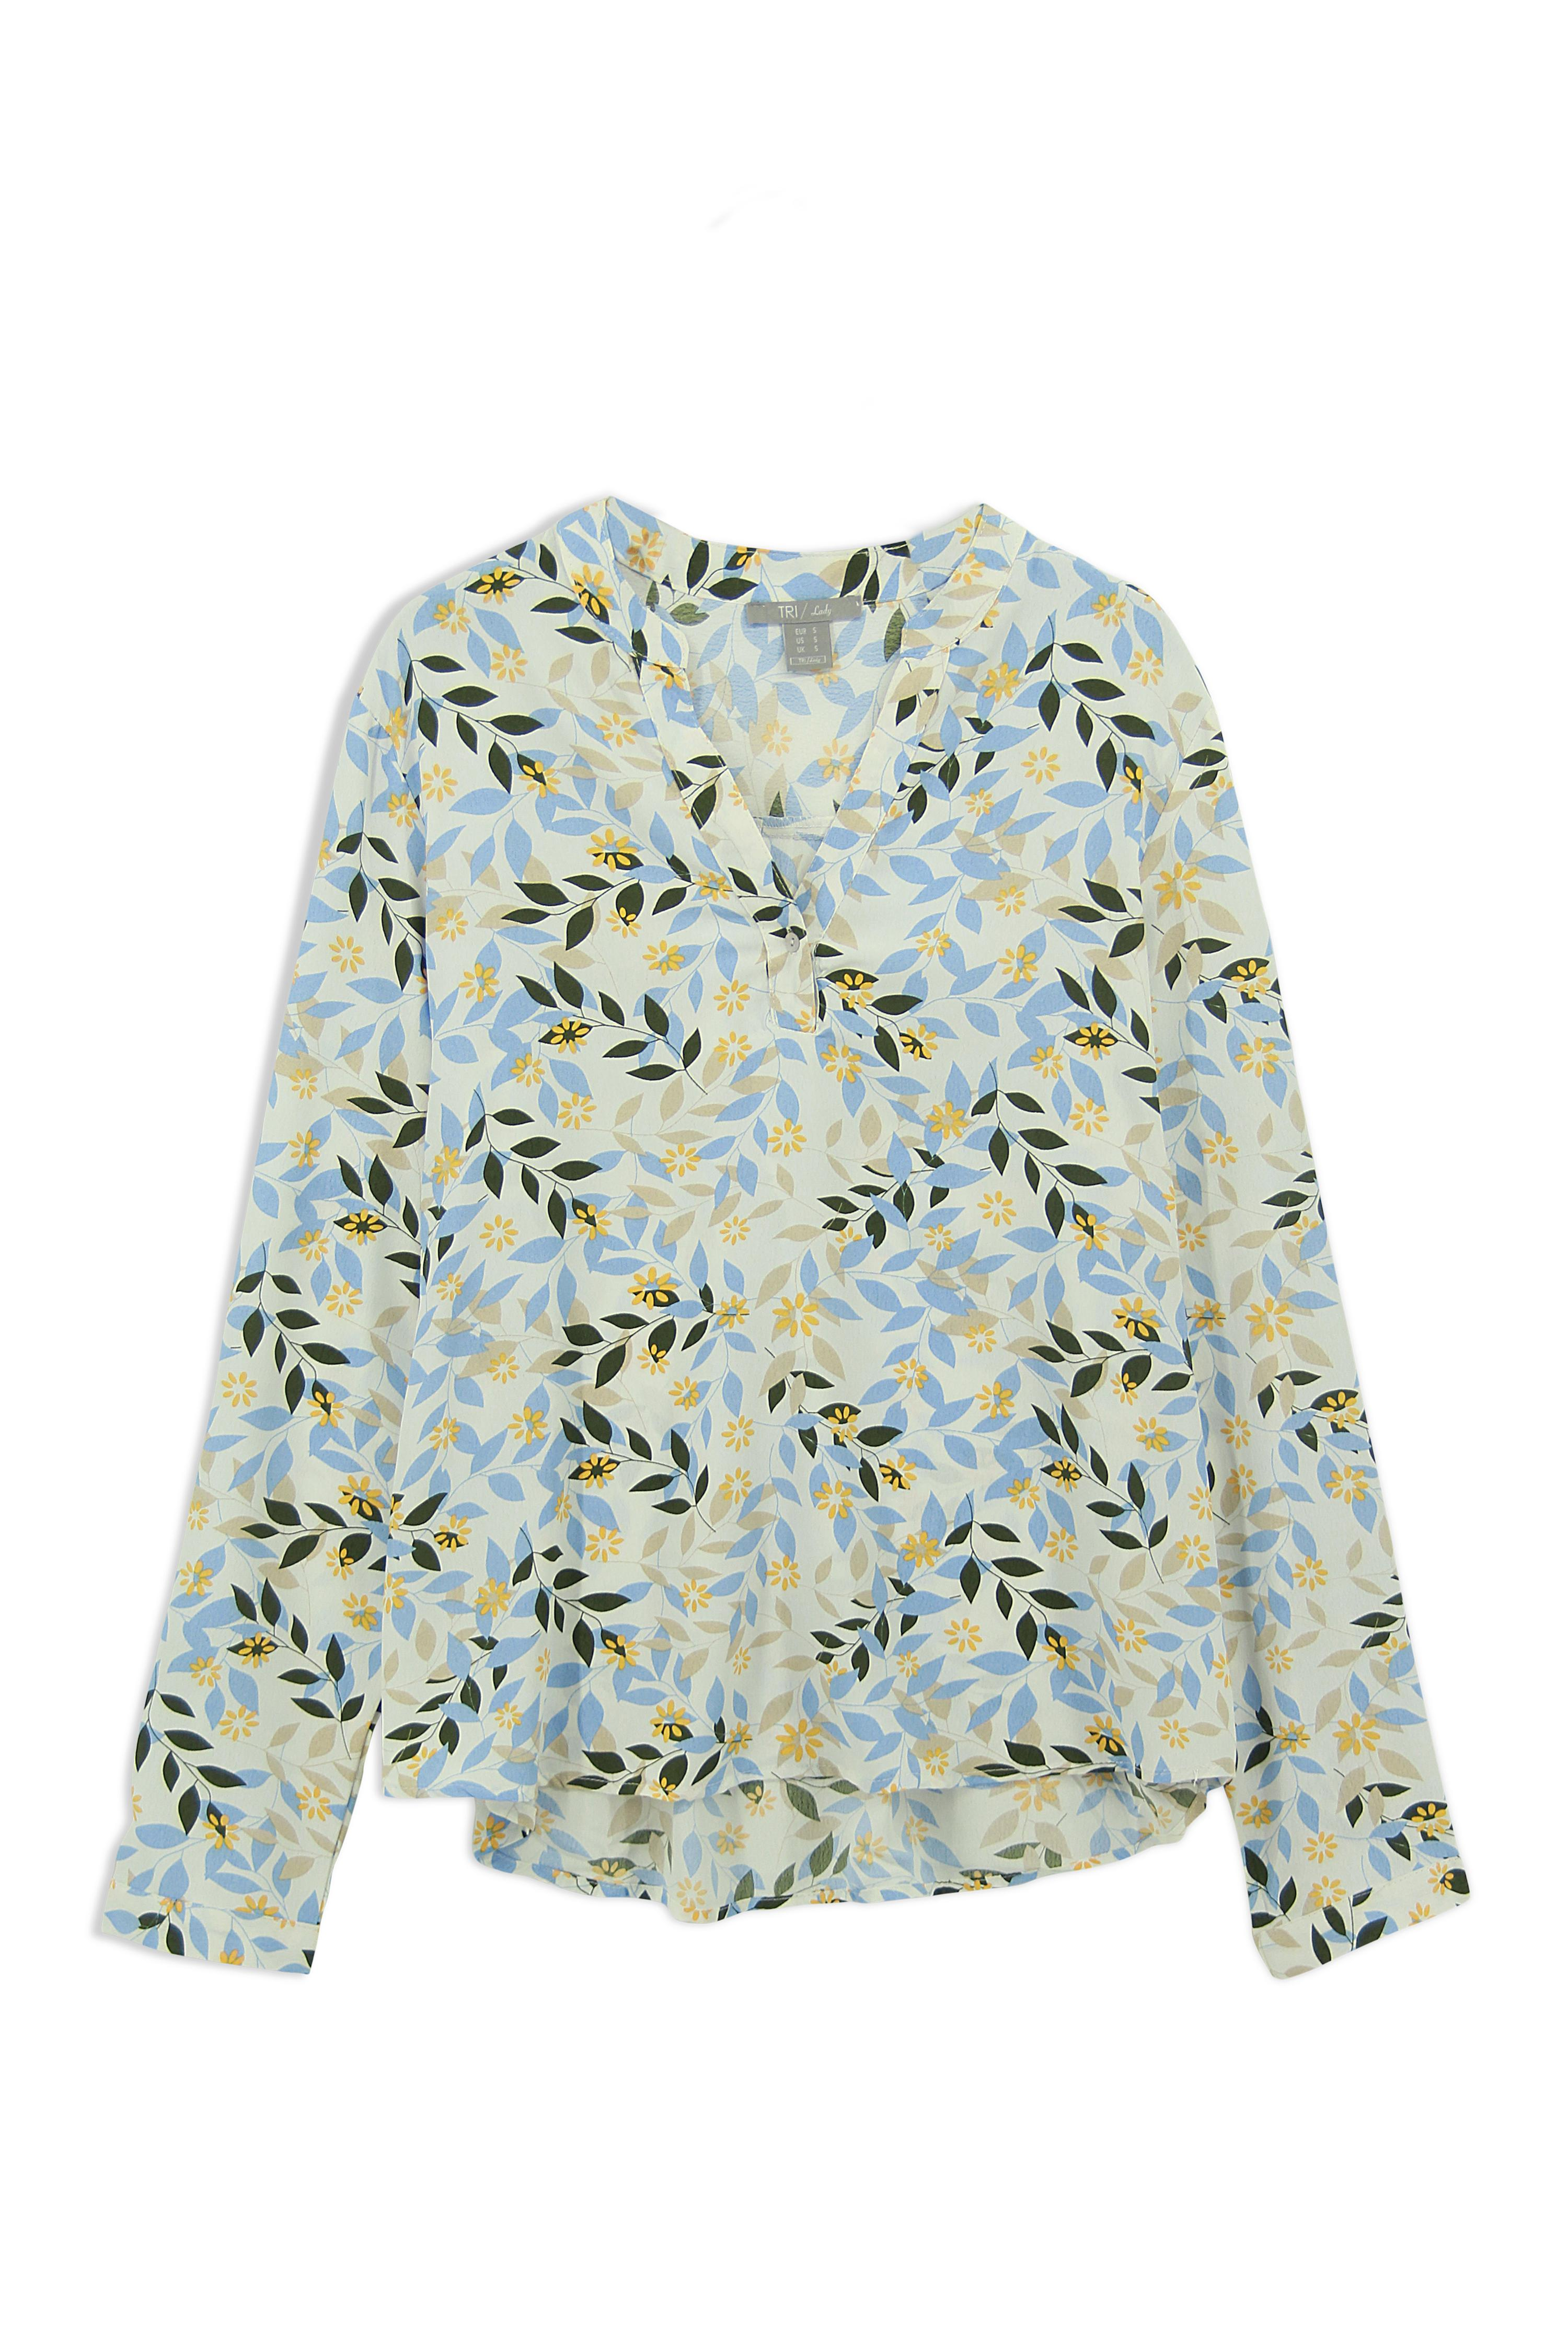 Lady Blouse Floral (LBF-4017)